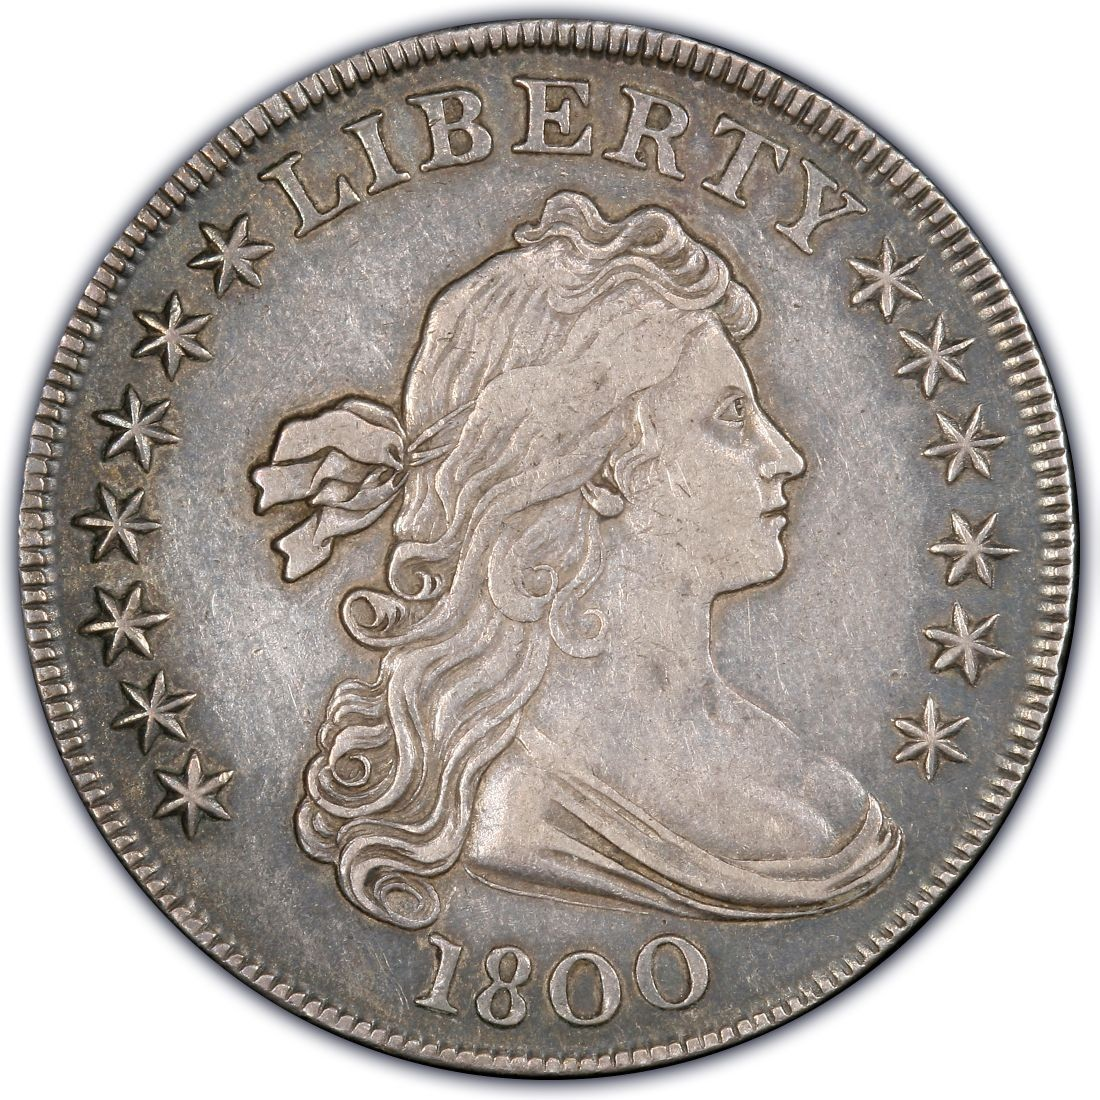 1800 Draped Bust Silver Dollar Values And Prices Past